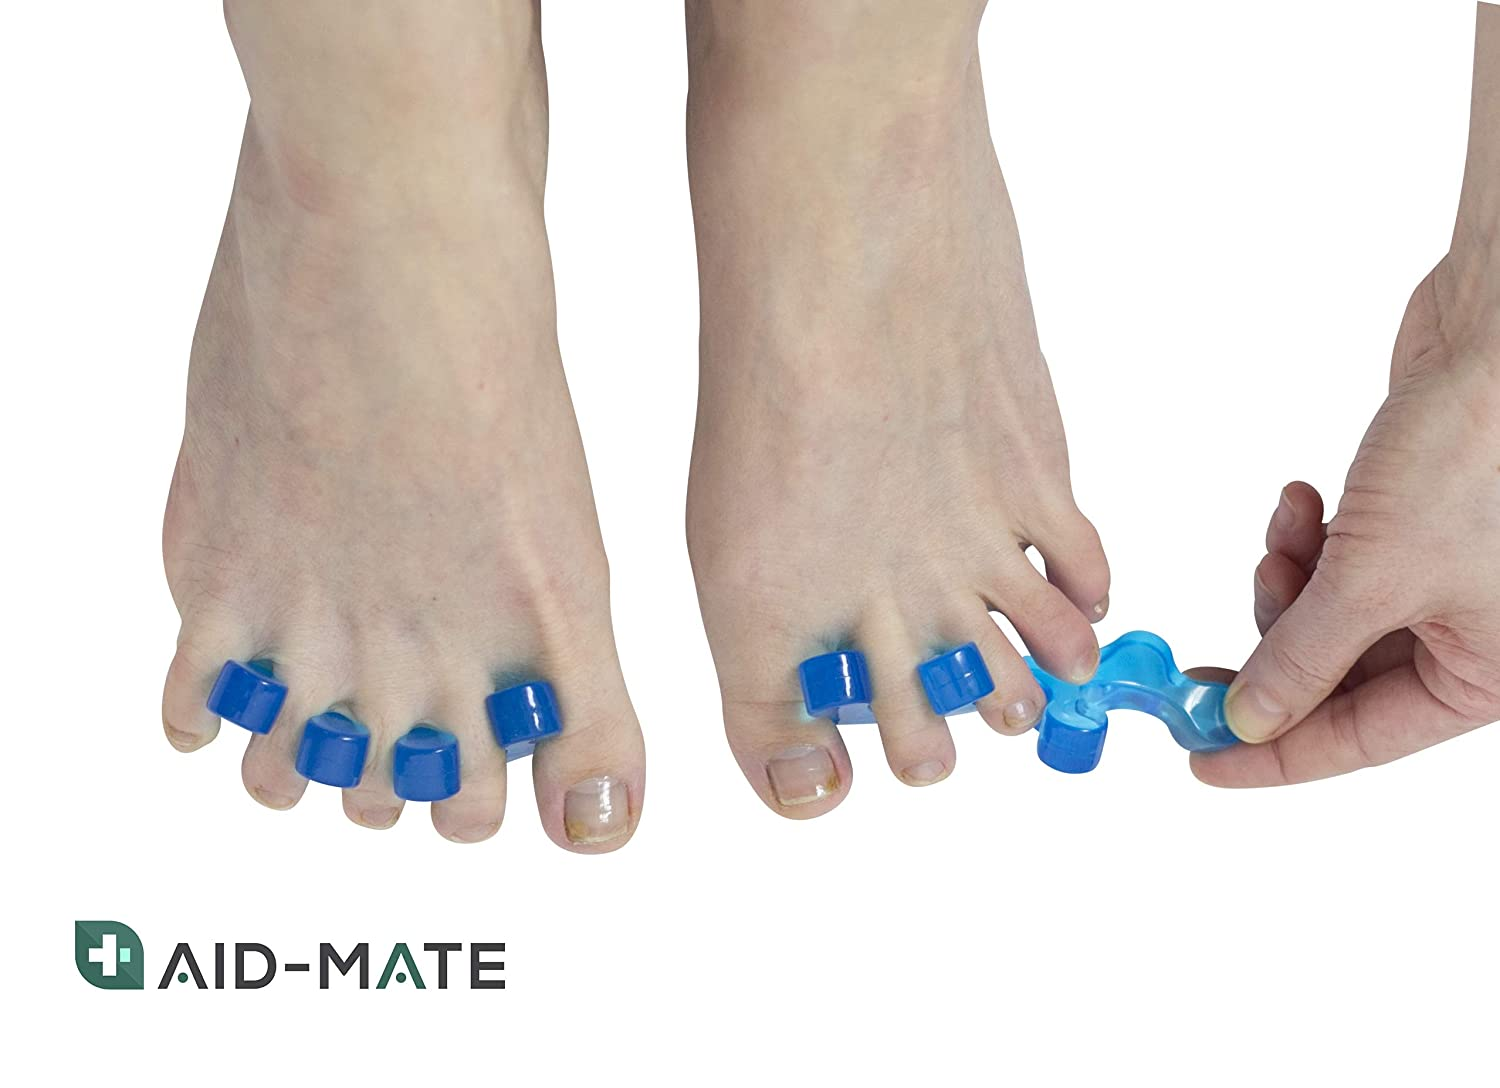 ... Kit | Bunion Splint | Toe Separators | Hammer Toe Straightener | Toe Spacers | Orthopedic Bunion Corrector for Men and Women: Health & Personal Care